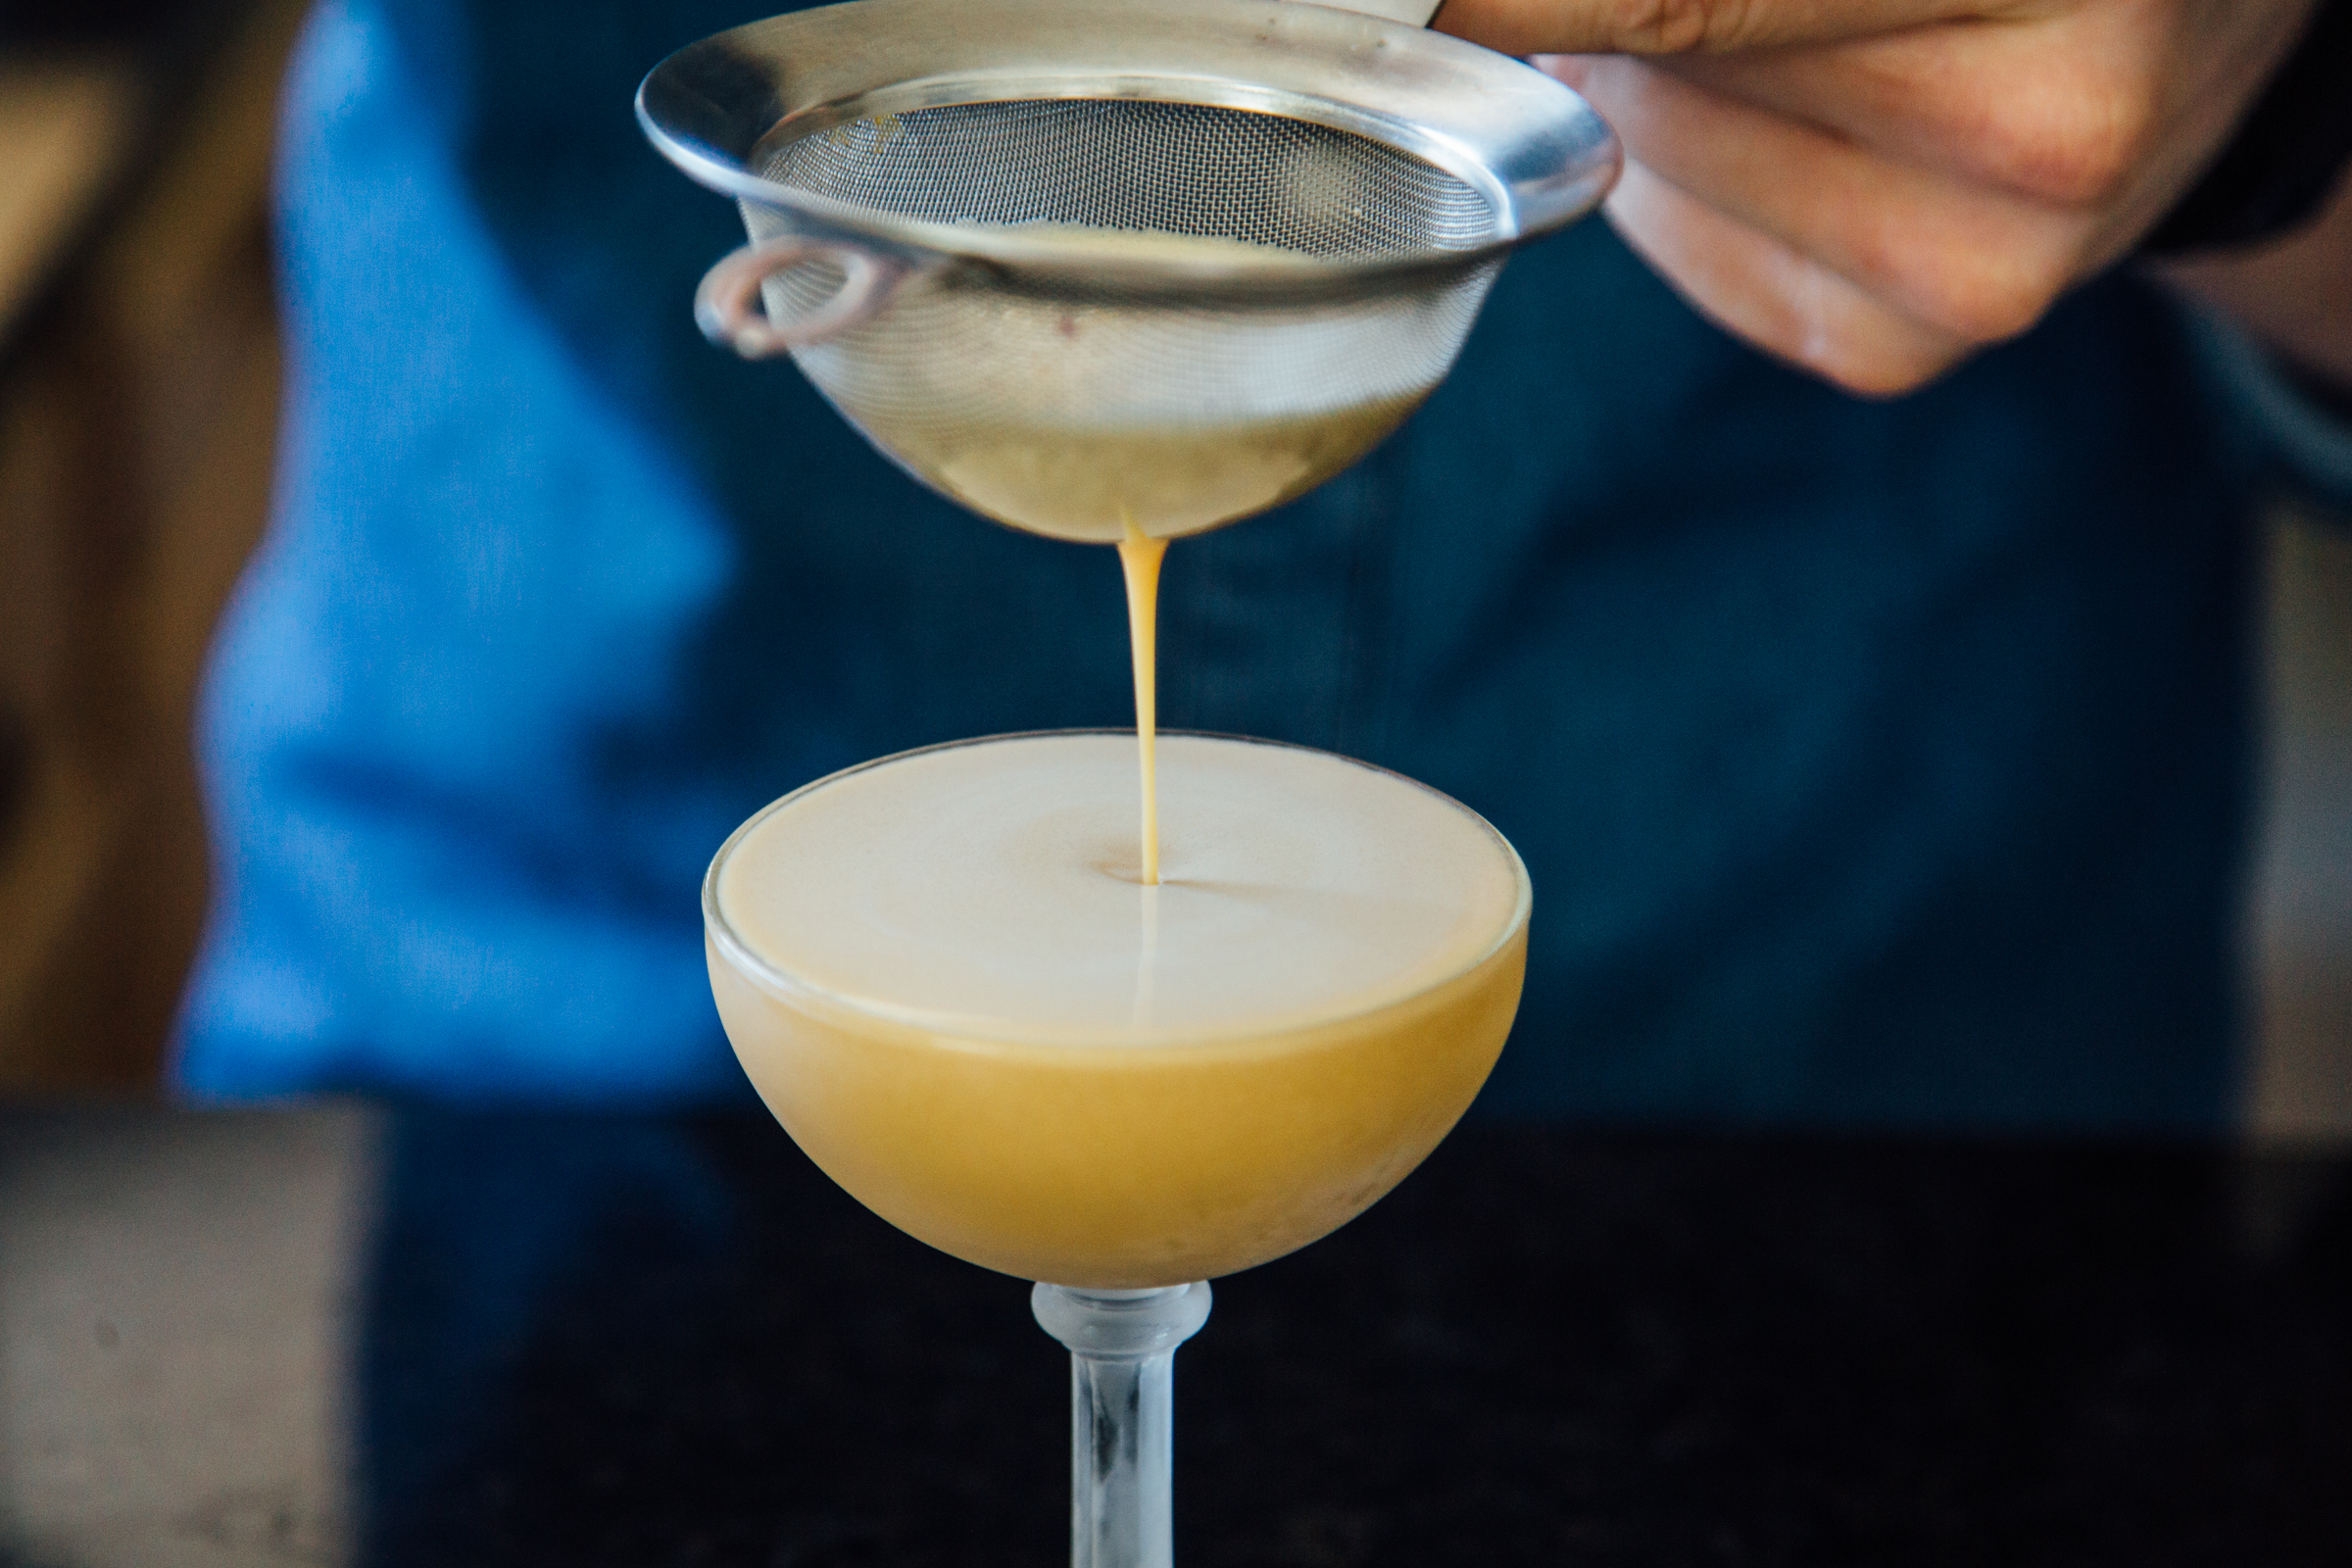 Double straining the whisky sour